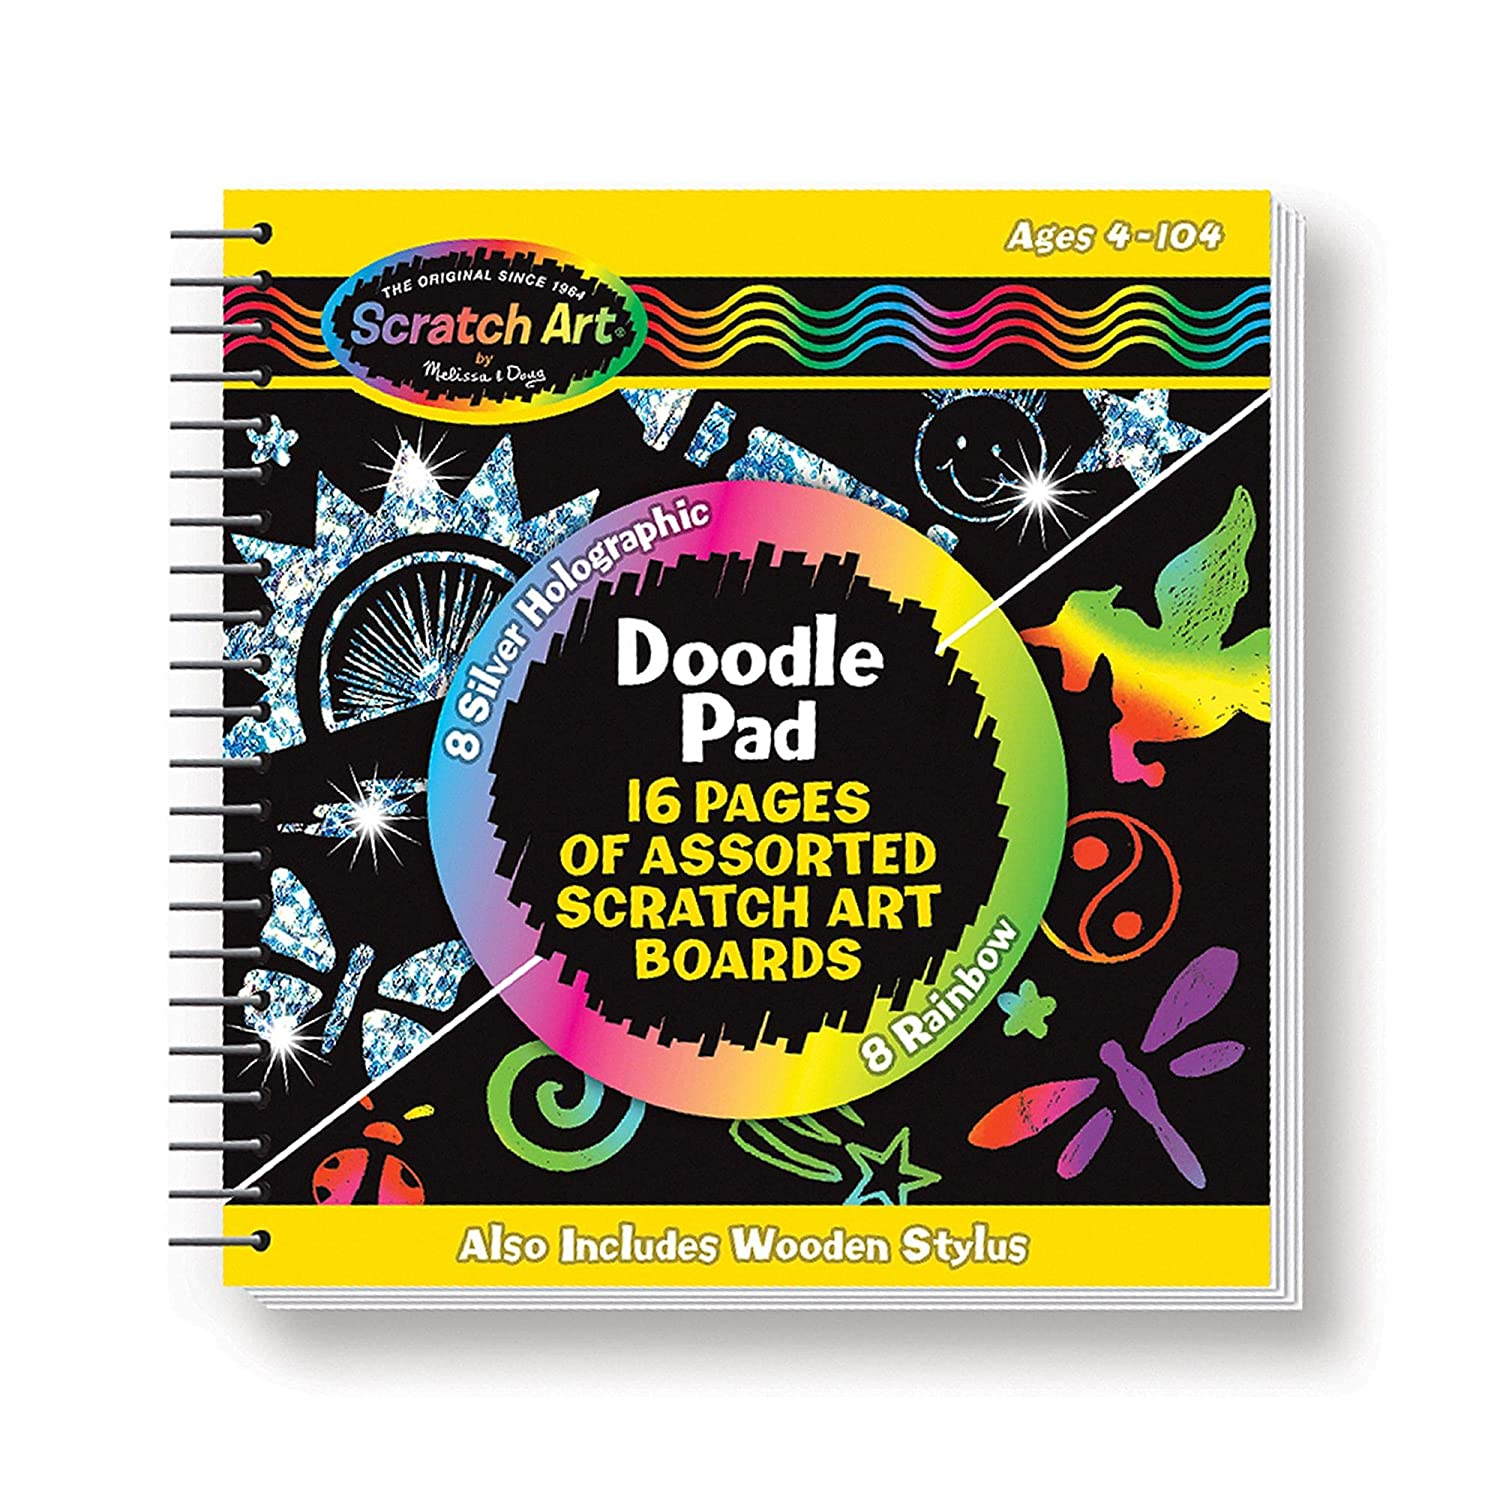 Melissa & Doug Scratch Art Doodle Pad Book - The Original (Arts & Crafts, Mini Stylus Included, Easy to Use, 16 Spiral-Bound Pages, Great Gift for Girls & Boys - Best For 4, 5, 6 Year Olds & Up) 814phj1SukL